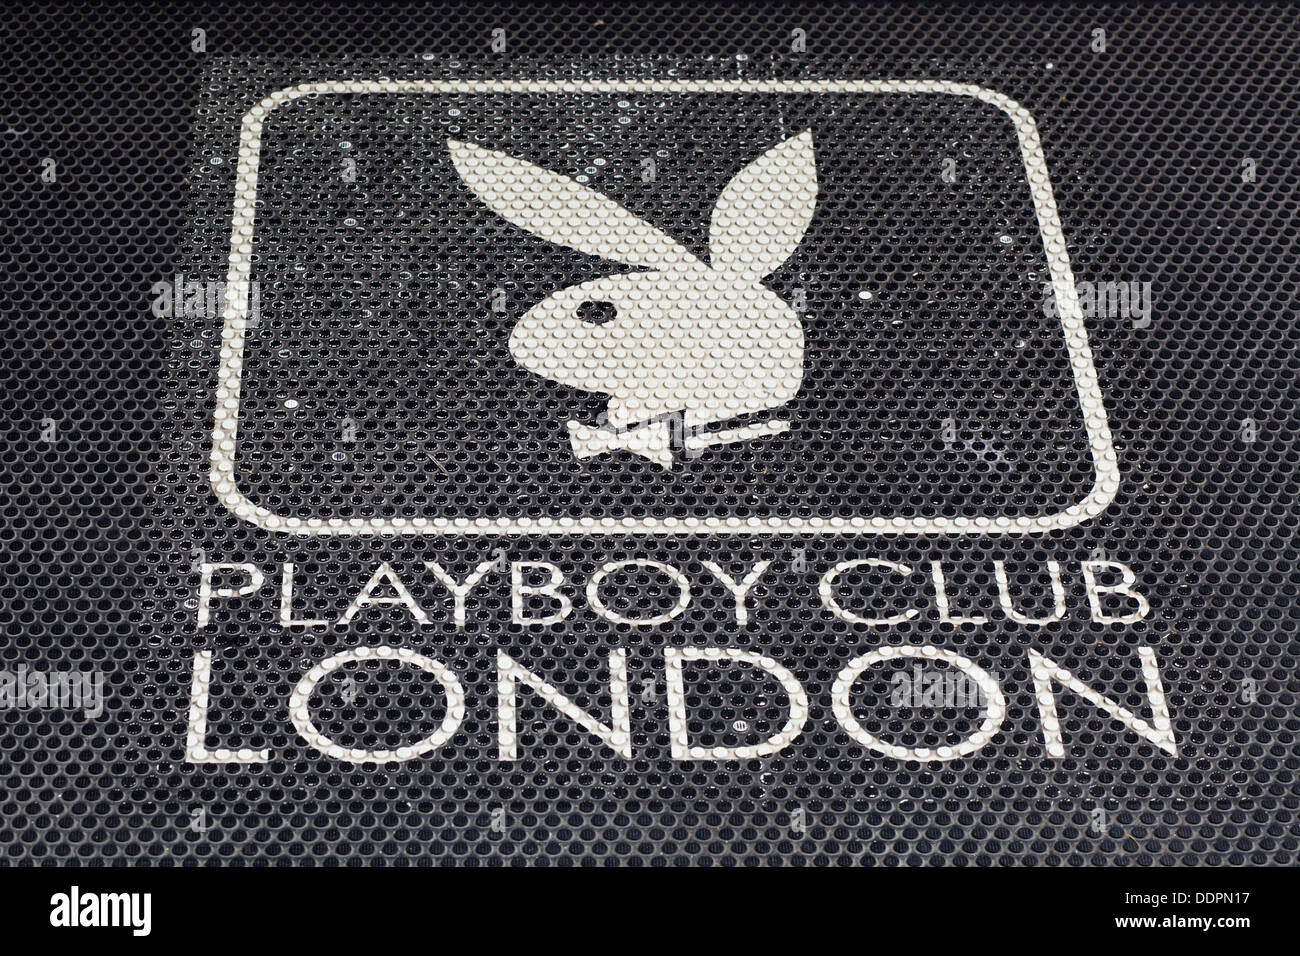 Doormat at the Entrance to the Playboy Club London - Stock Image